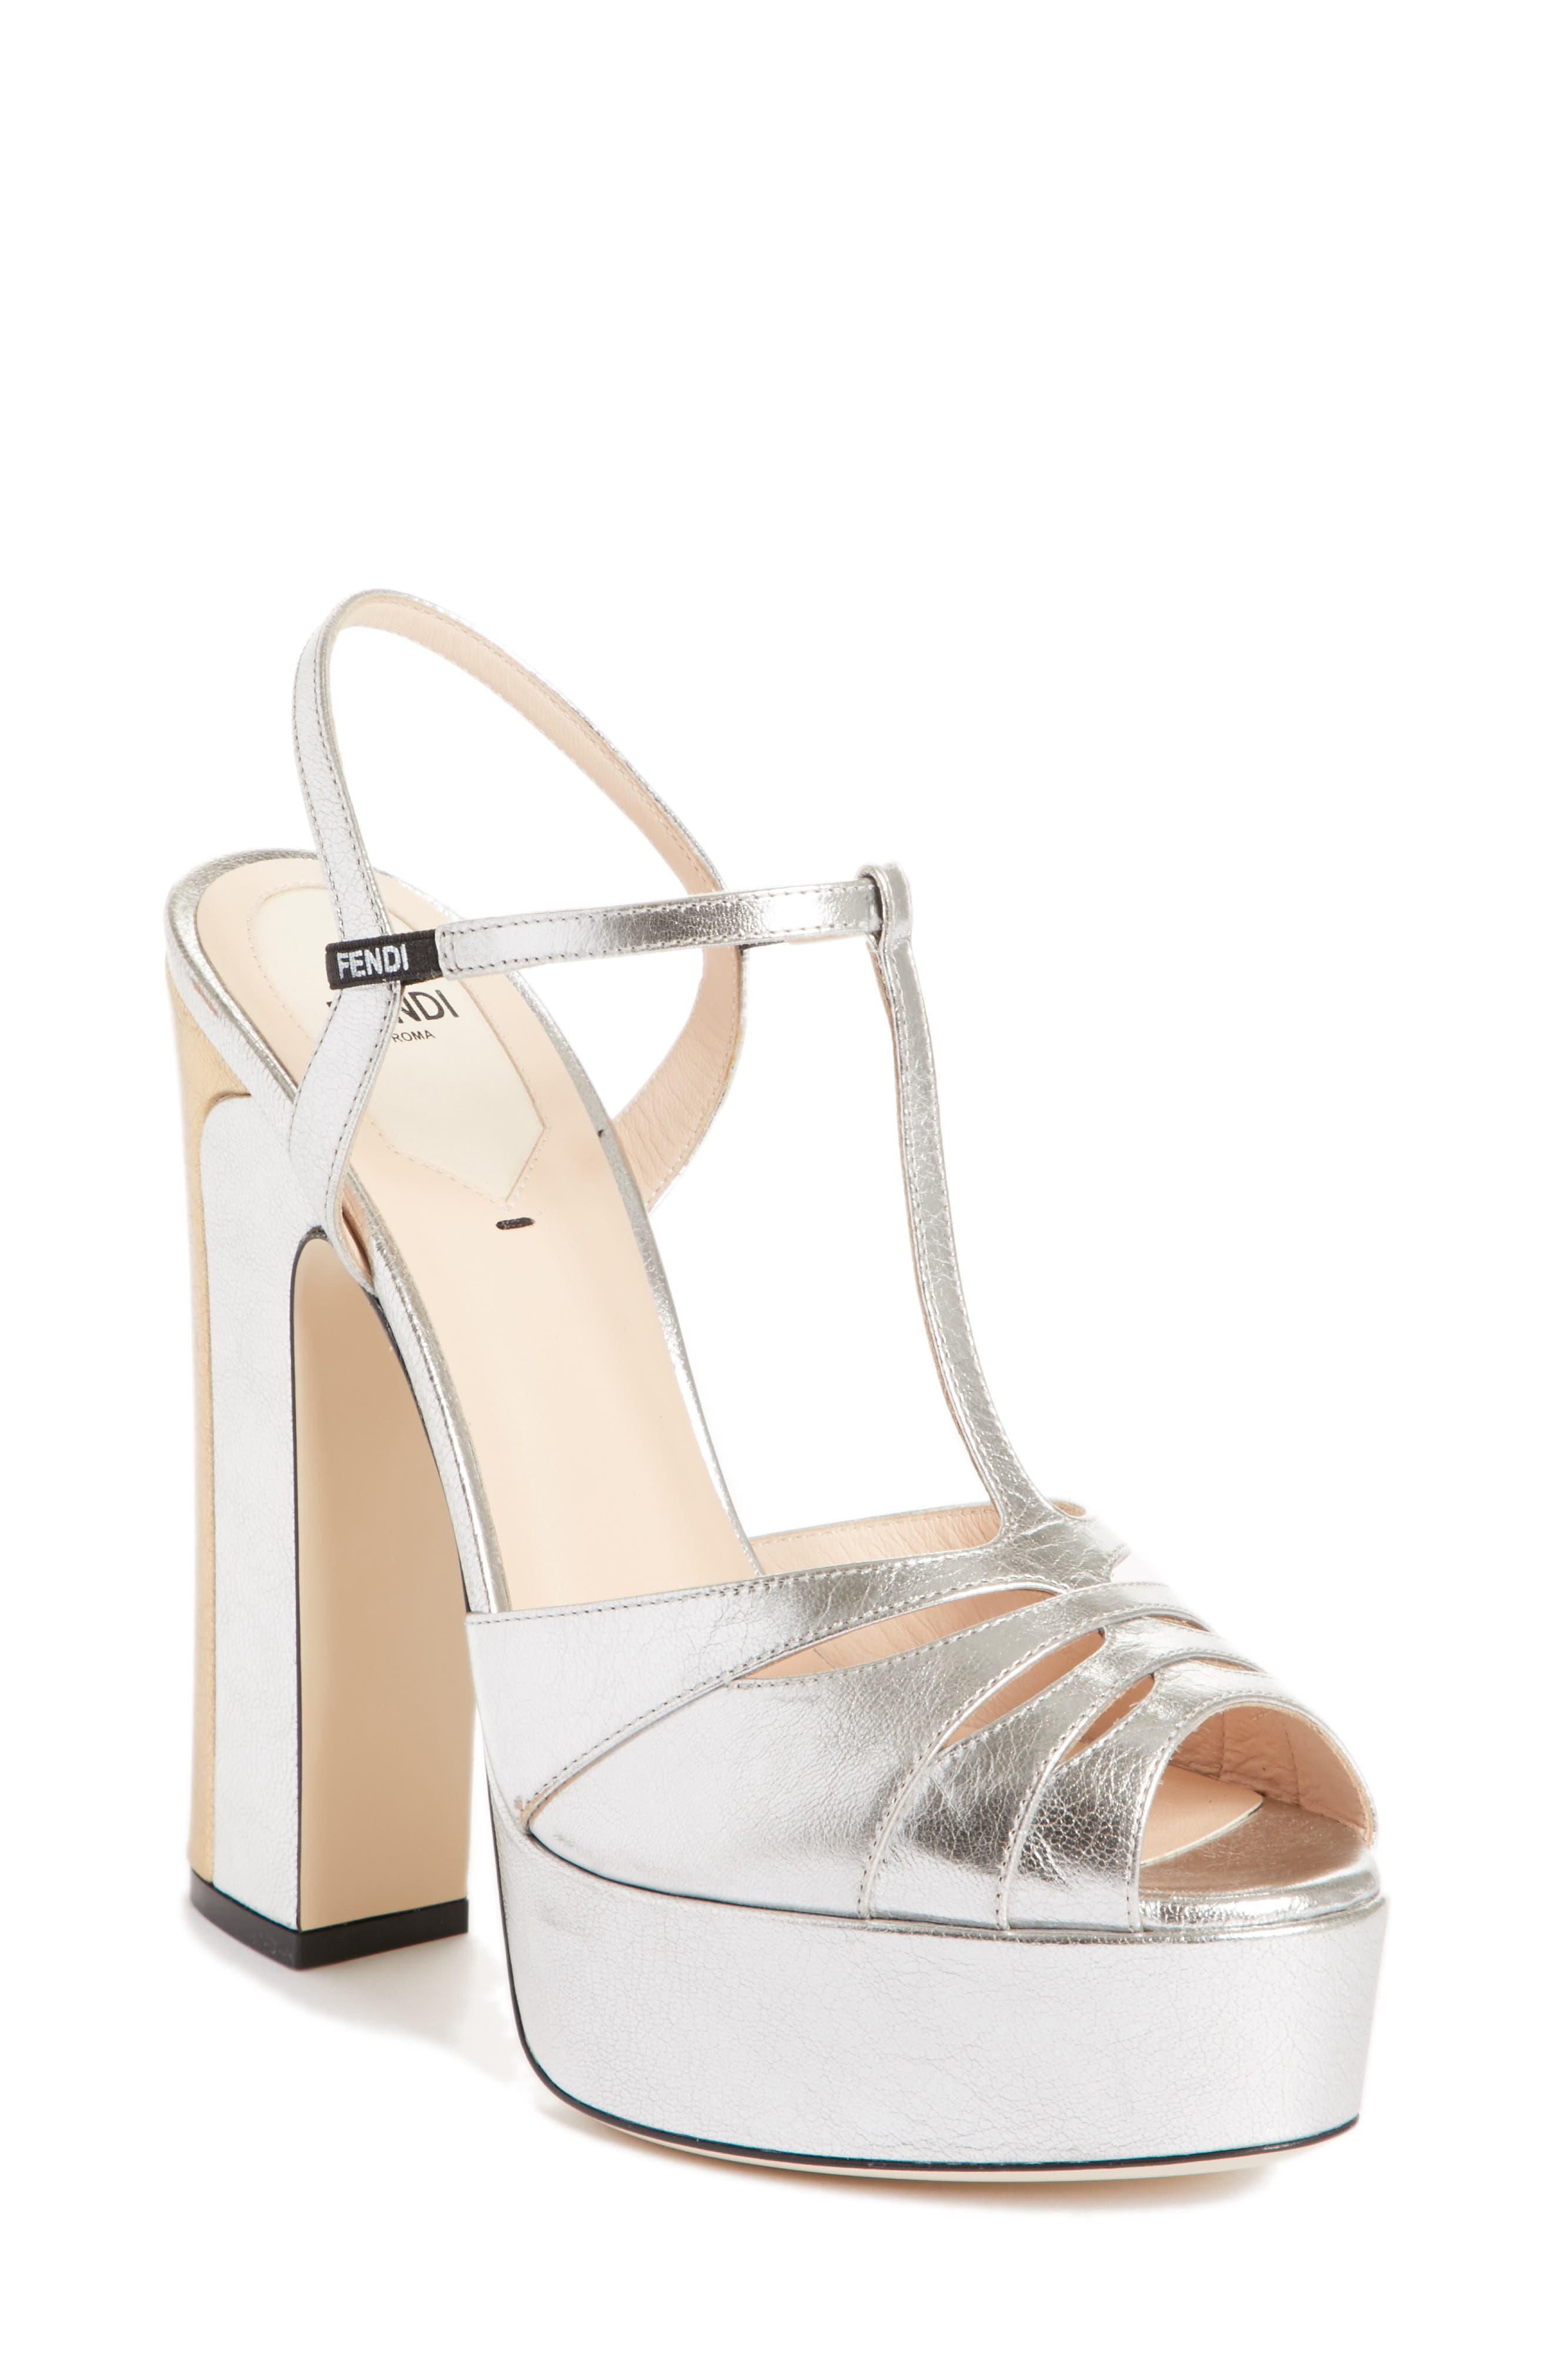 Main Image - Fendi Duo Platform Sandal (Women)